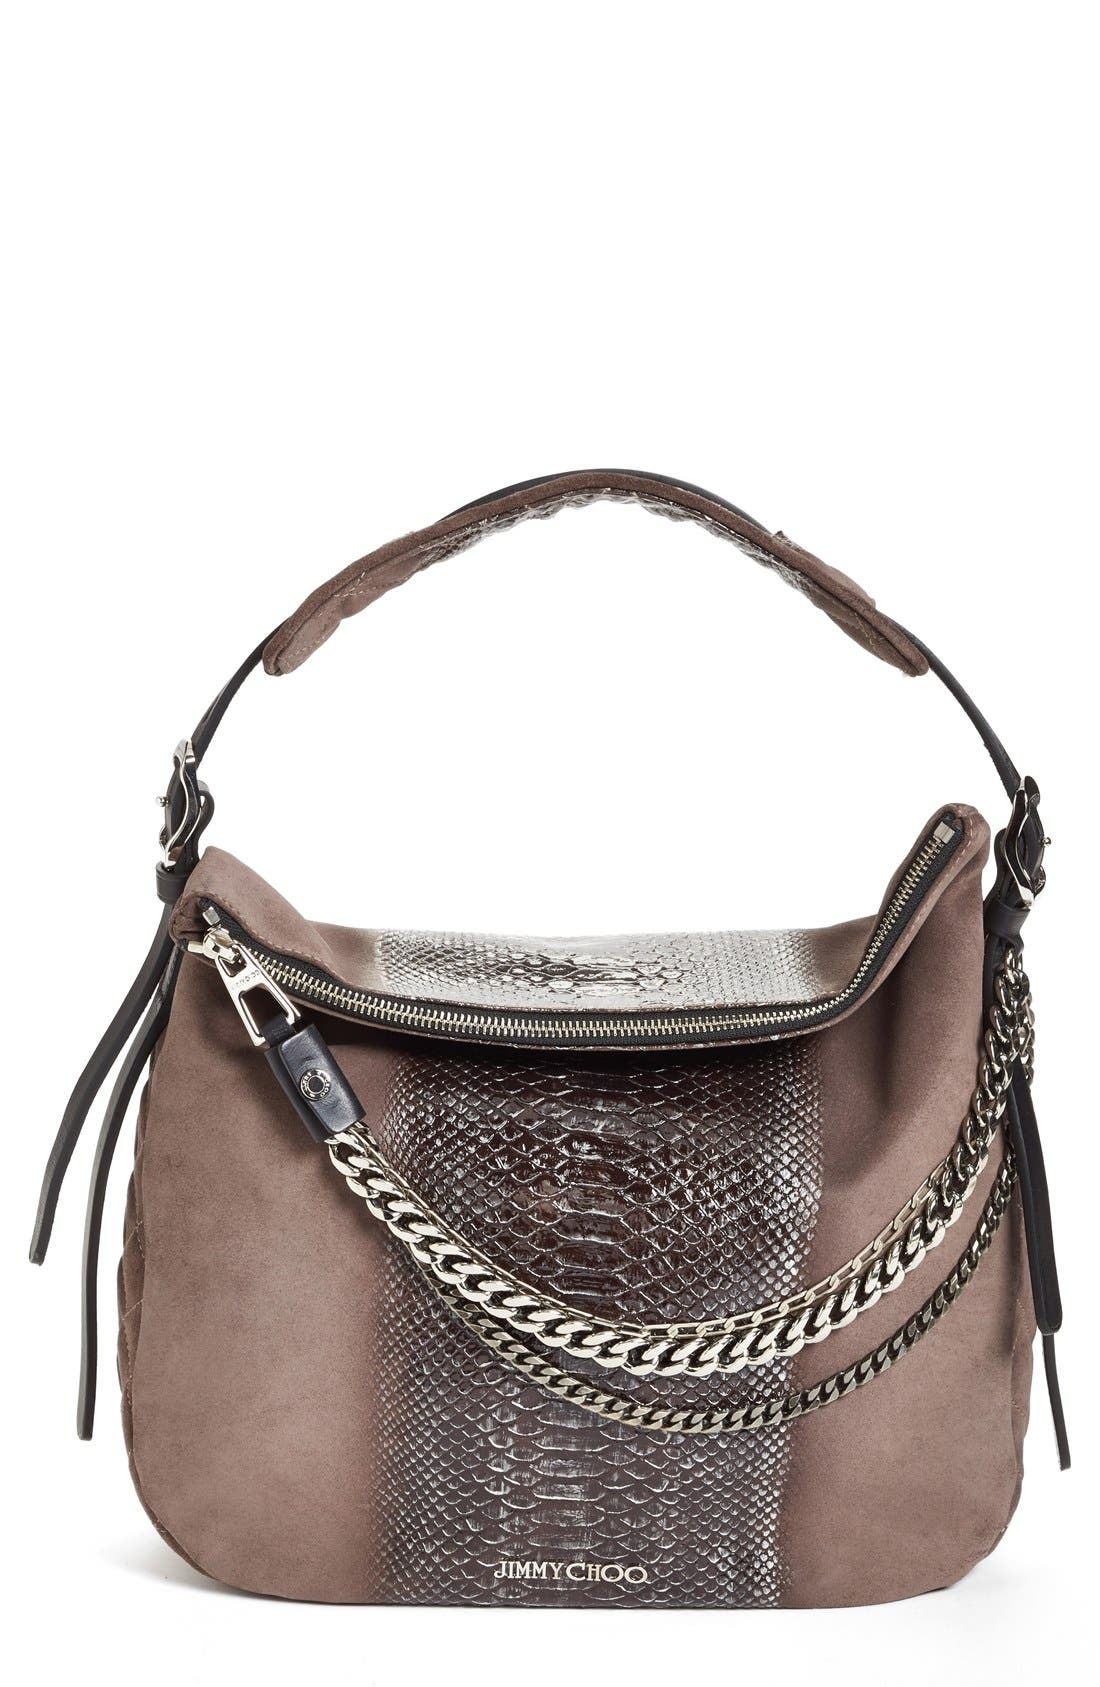 Alternate Image 1 Selected - Jimmy Choo 'Small Boho' Python Print Suede Hobo